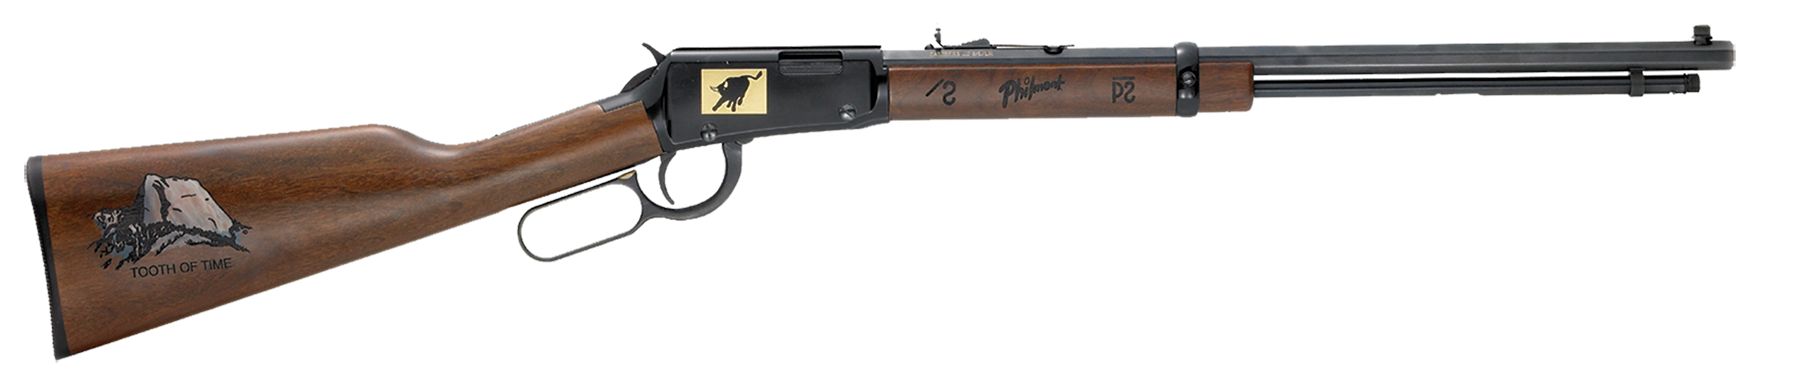 Henry H001TPM Lever Special Edition Philmont Scout Ranch Rifle Lever 22 Short/Long/Long Rifle 20